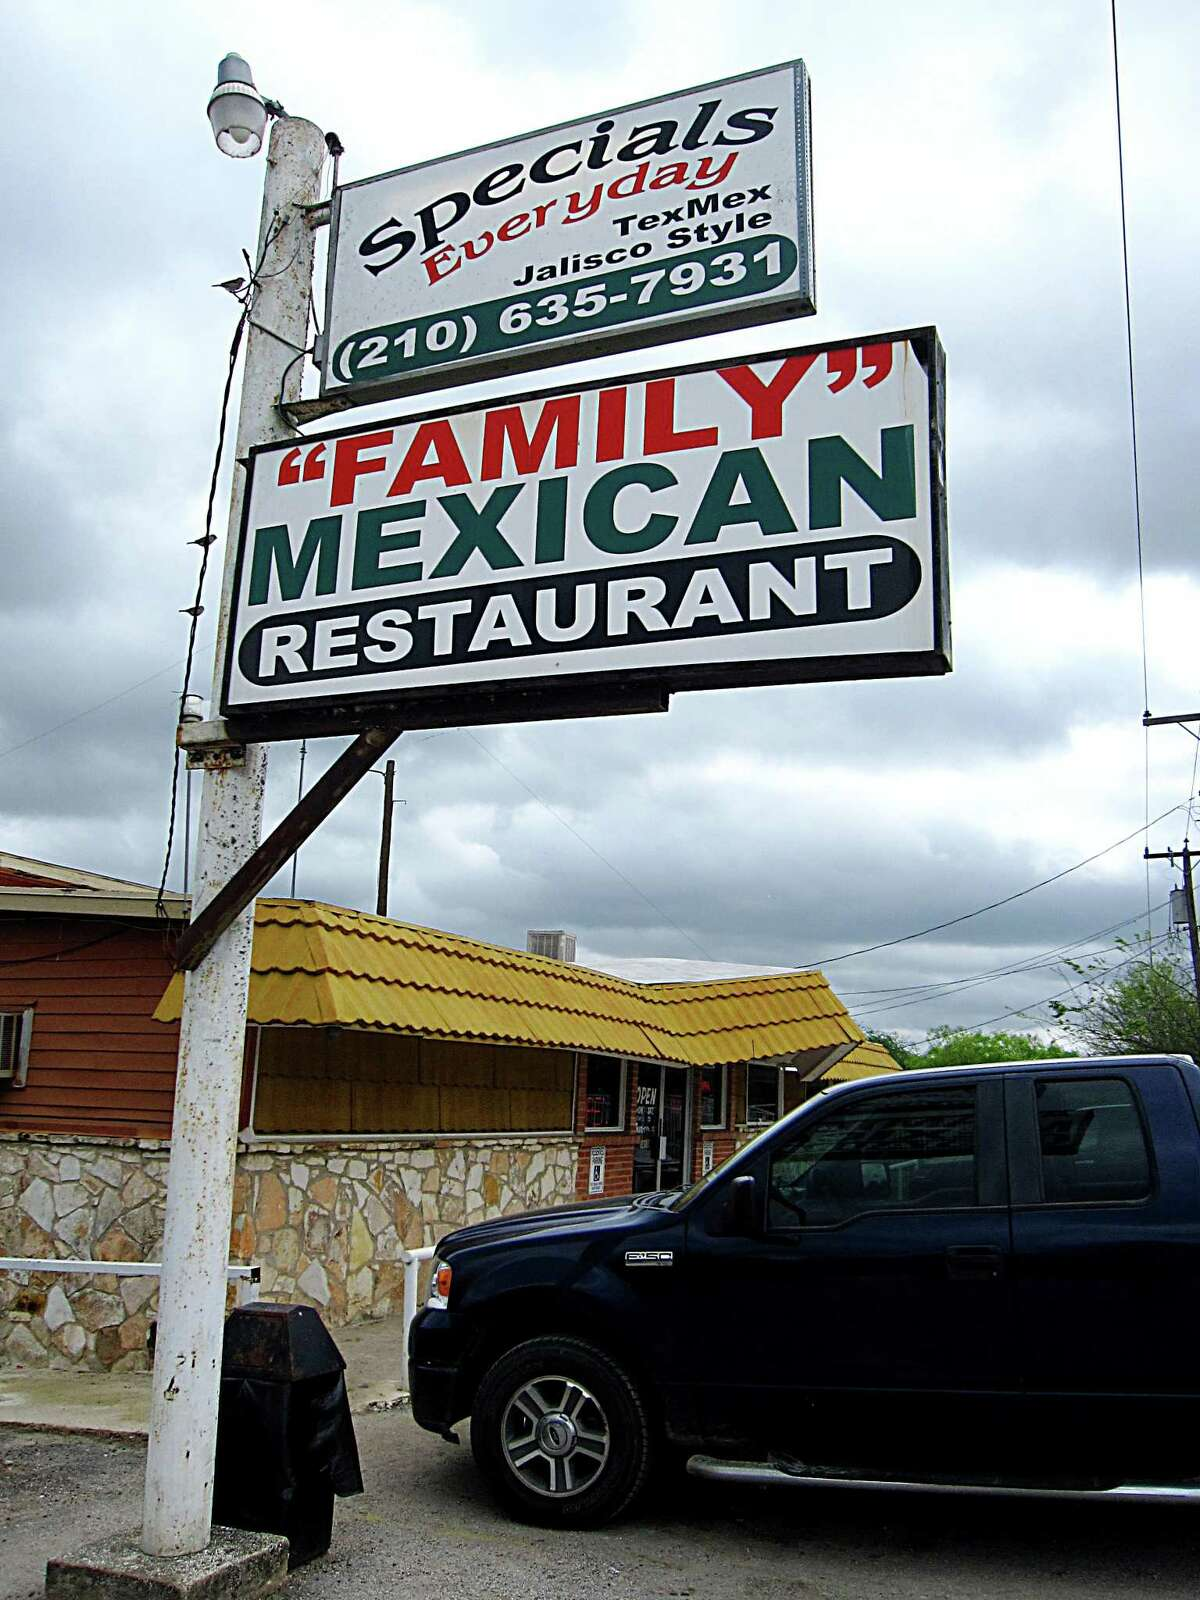 Family Mexican Restaurant on U.S. 181 South.